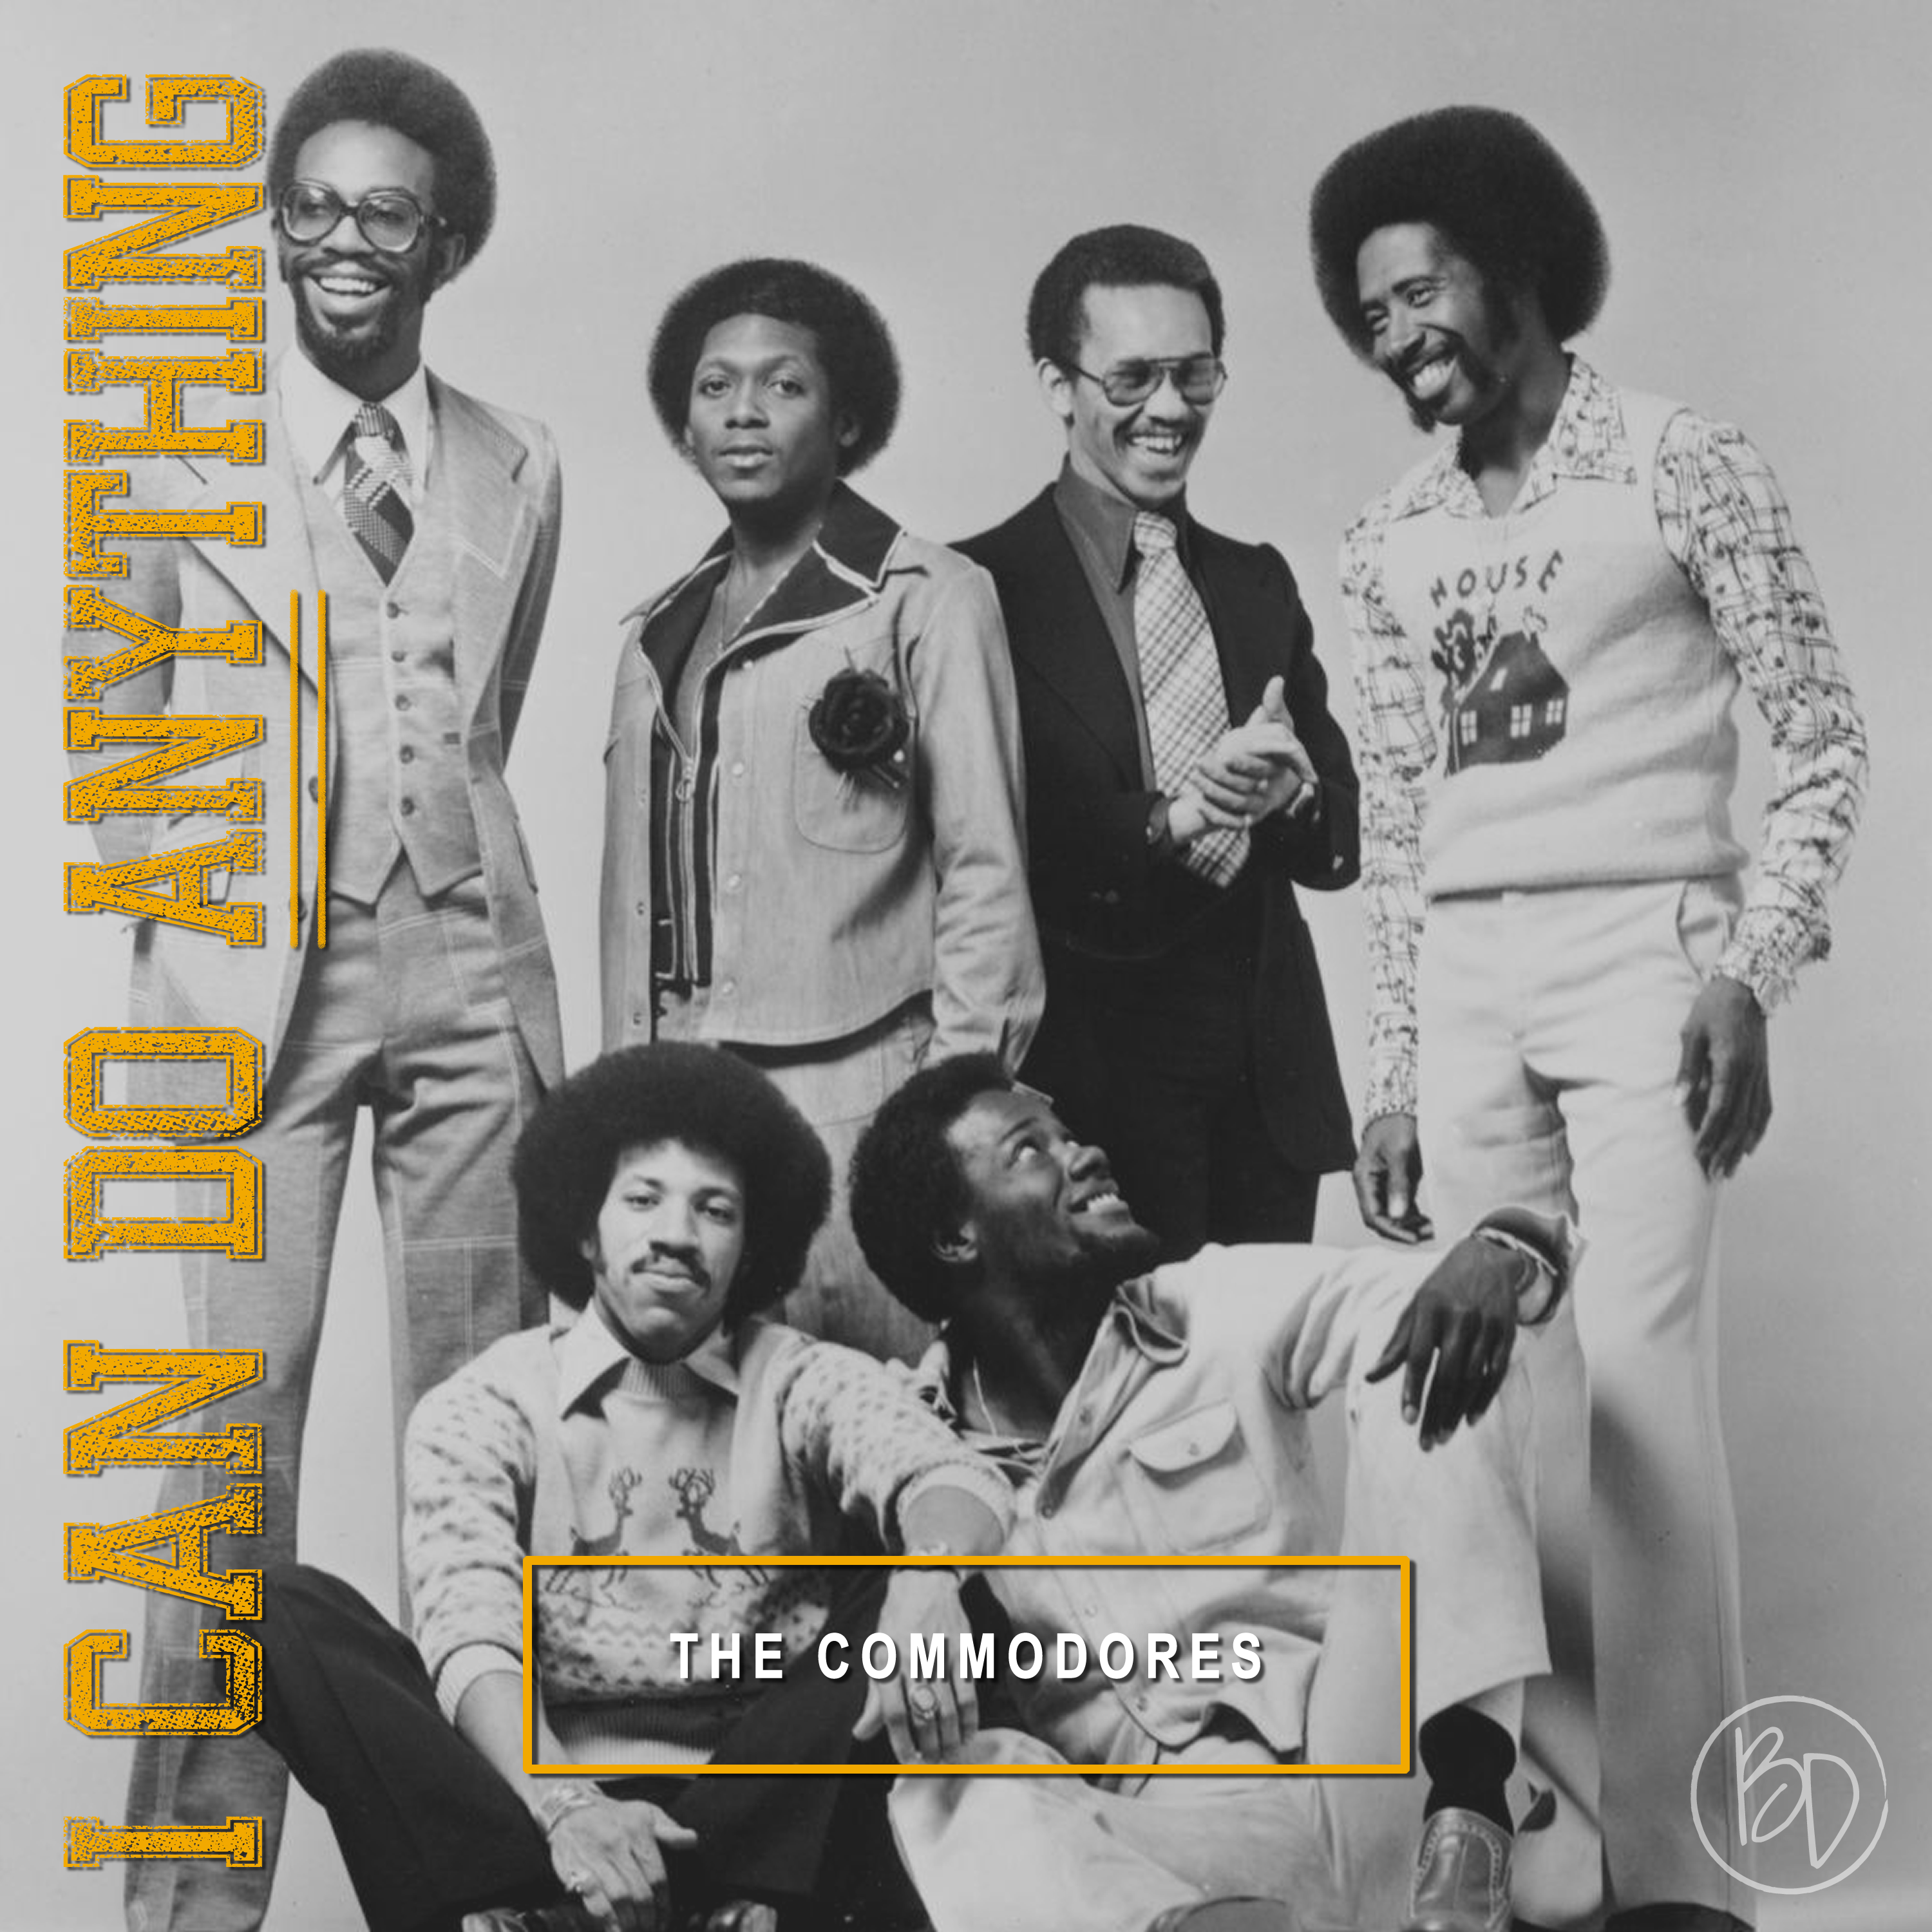 06 02 2019 The Commodores Cuz It S Easy Like Sunday Morning Every Family On The Block Got Up On Saturday Morni Commodores Black Music Easy Like Sunday Morning